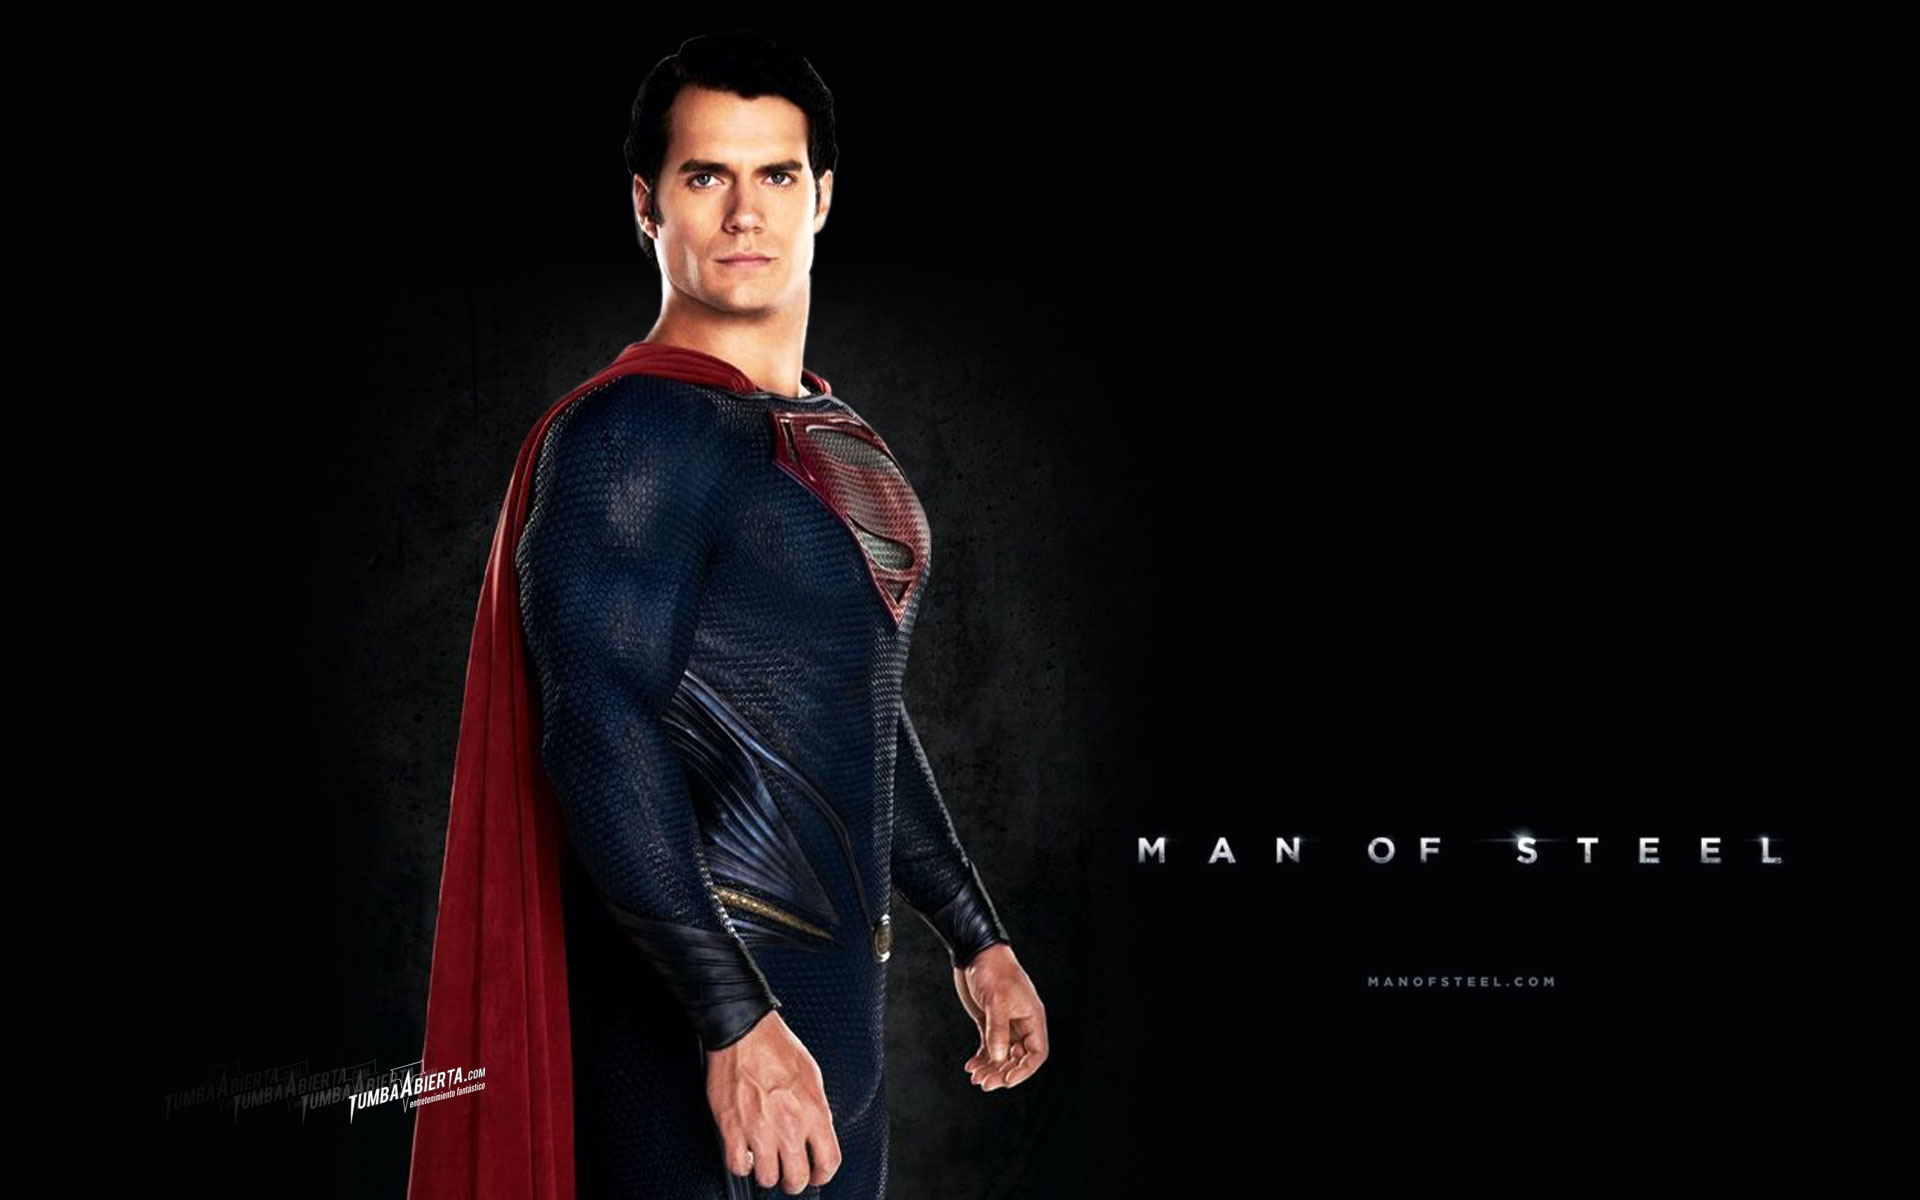 wallpaper hd man of steel hombre de acero 1920x1200 hd v3jpg 1920x1200